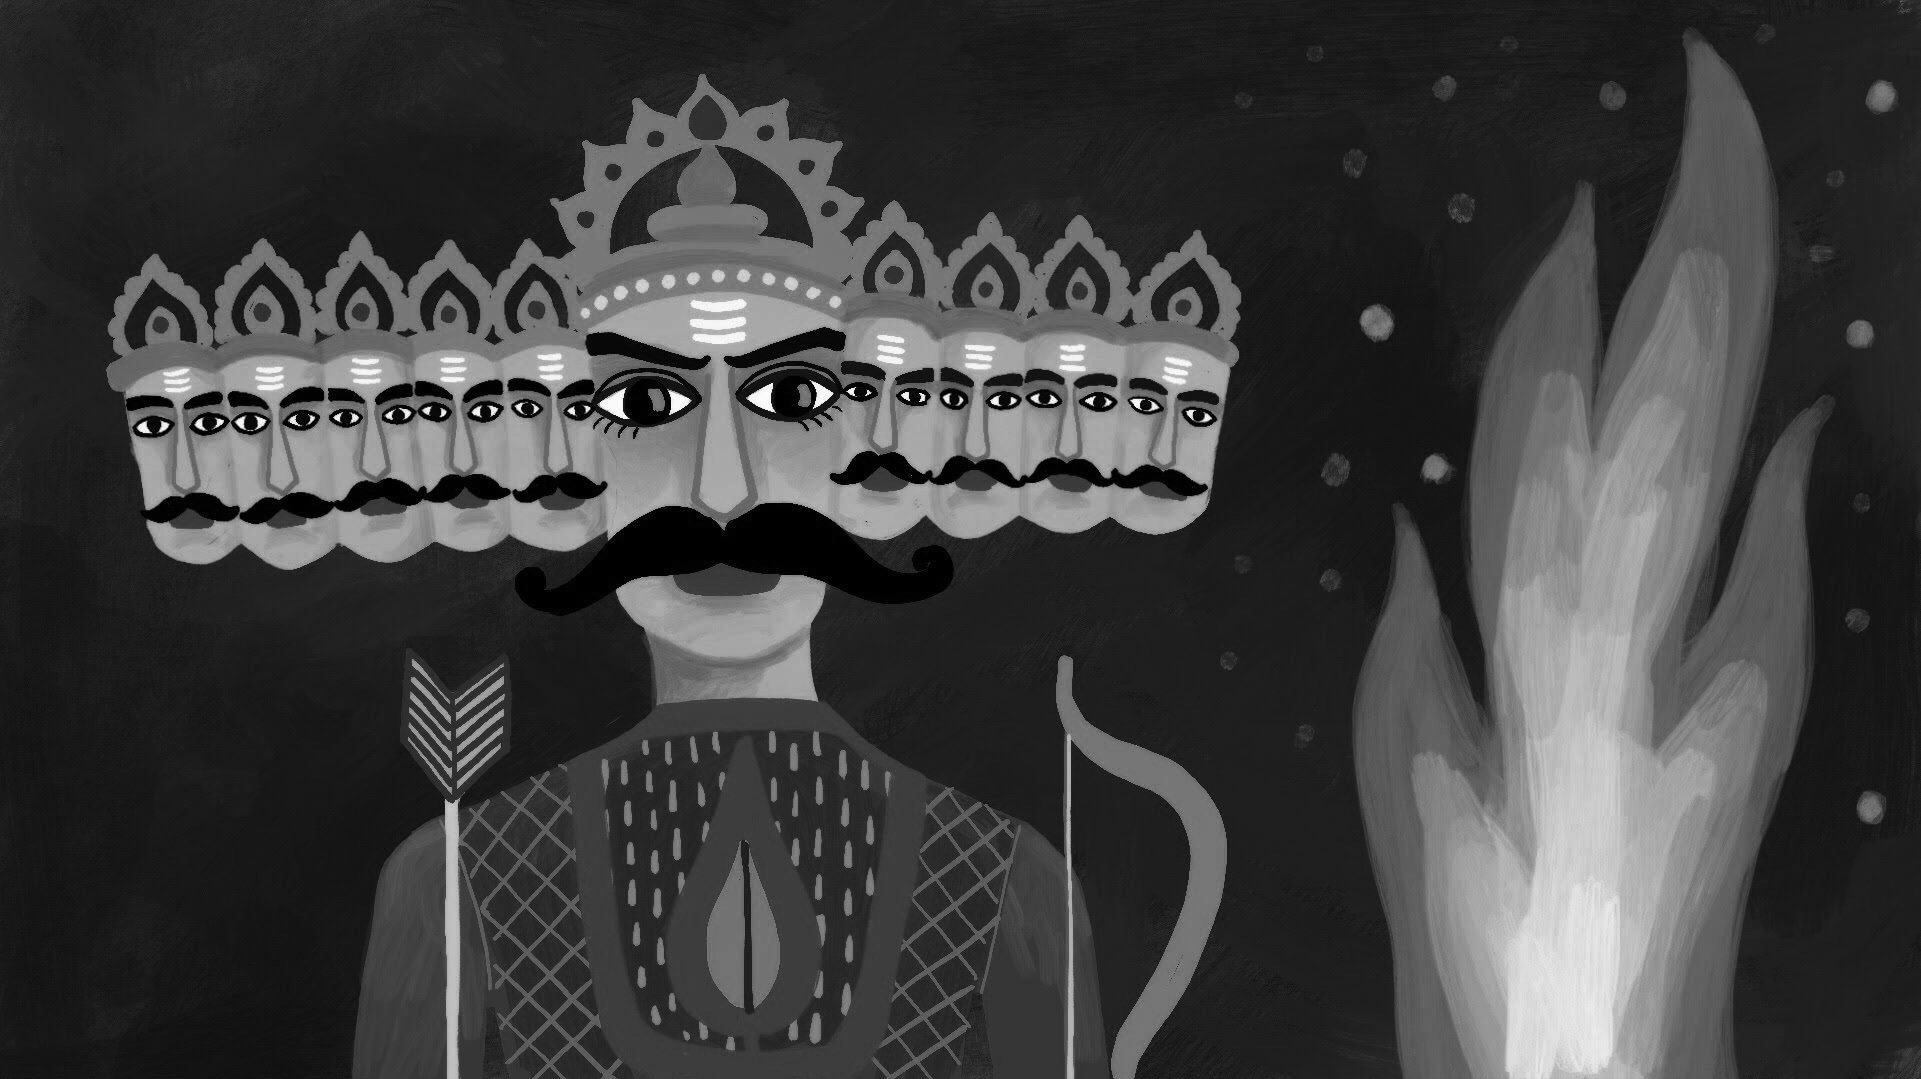 In 'The Crocodile', Gulzar tells a story of smoke and fire during Dussehra